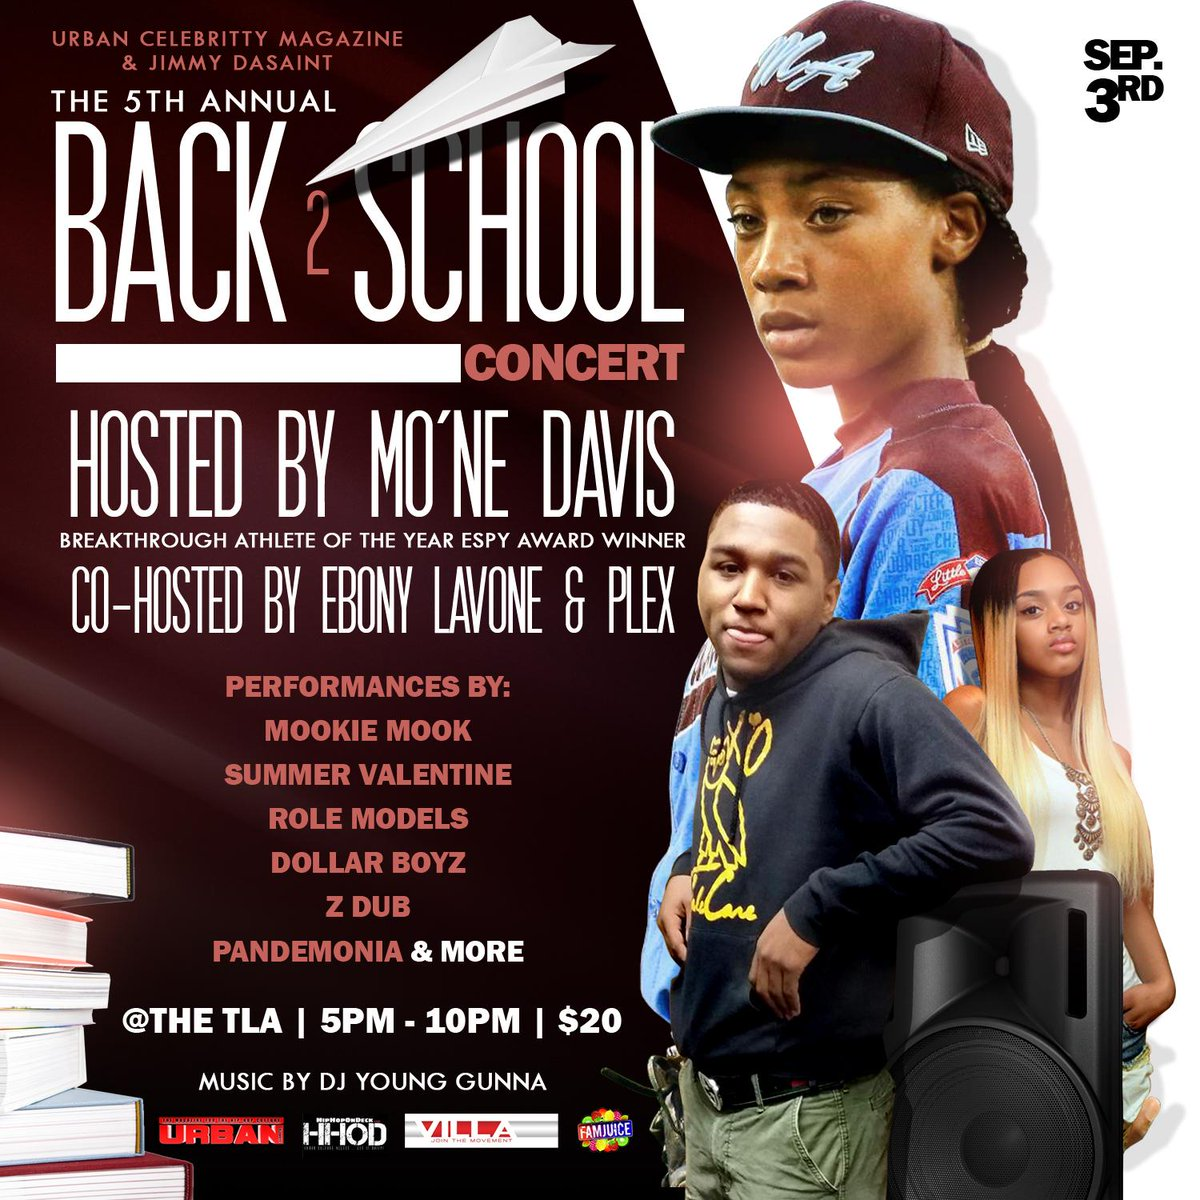 @urbanceleb215 presents the 5th annual Back 2 school concert @TLAPhilly Sept 3rd hosted by Mo'ne Davis @ebonylavone http://t.co/yTRBEe659B